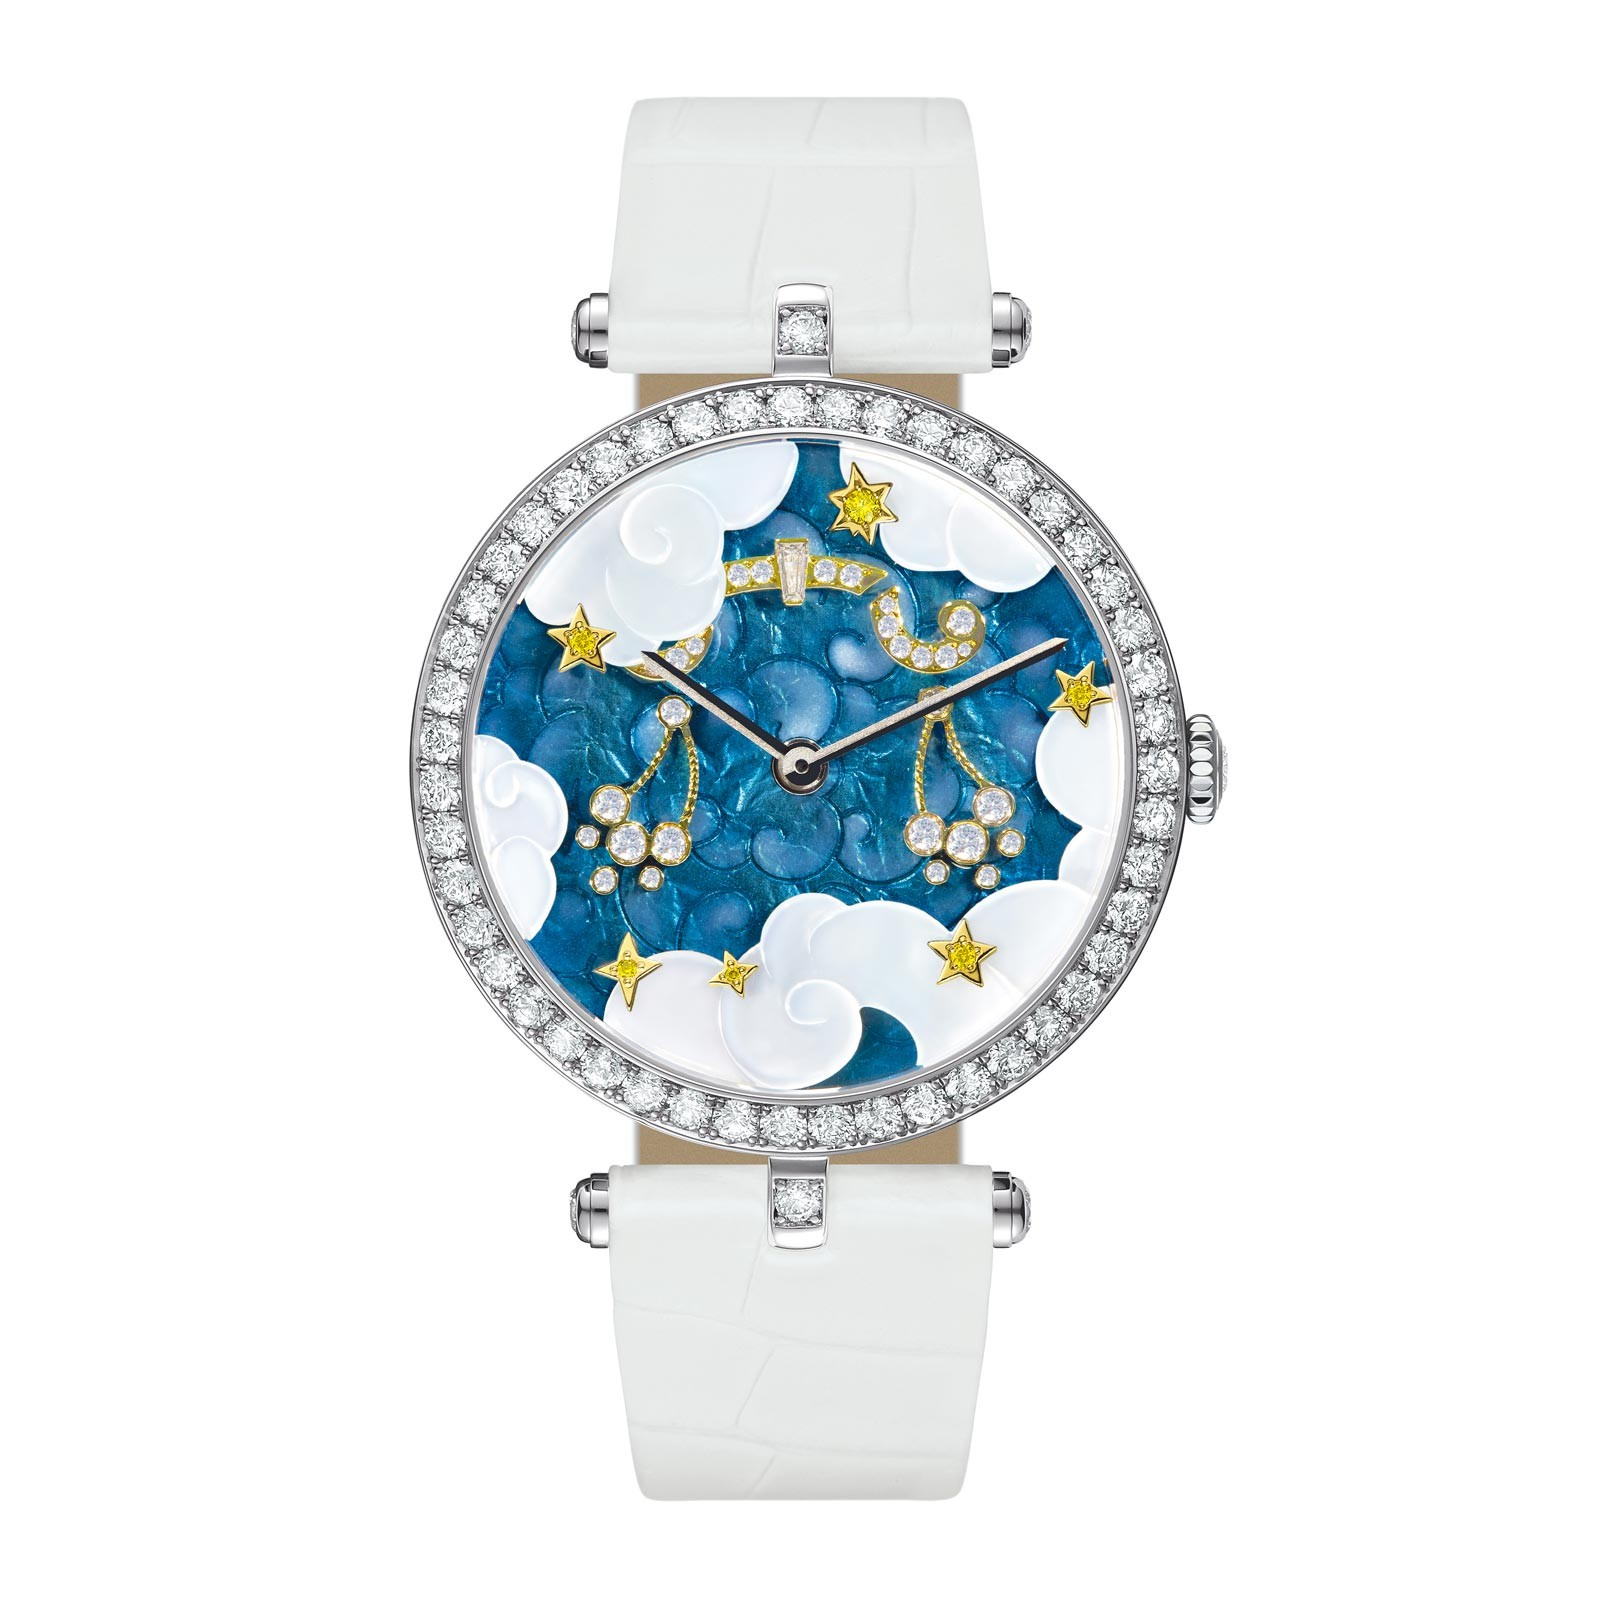 zodiac signs in new watch lady arpels zodiac by van cleef arpels. Black Bedroom Furniture Sets. Home Design Ideas